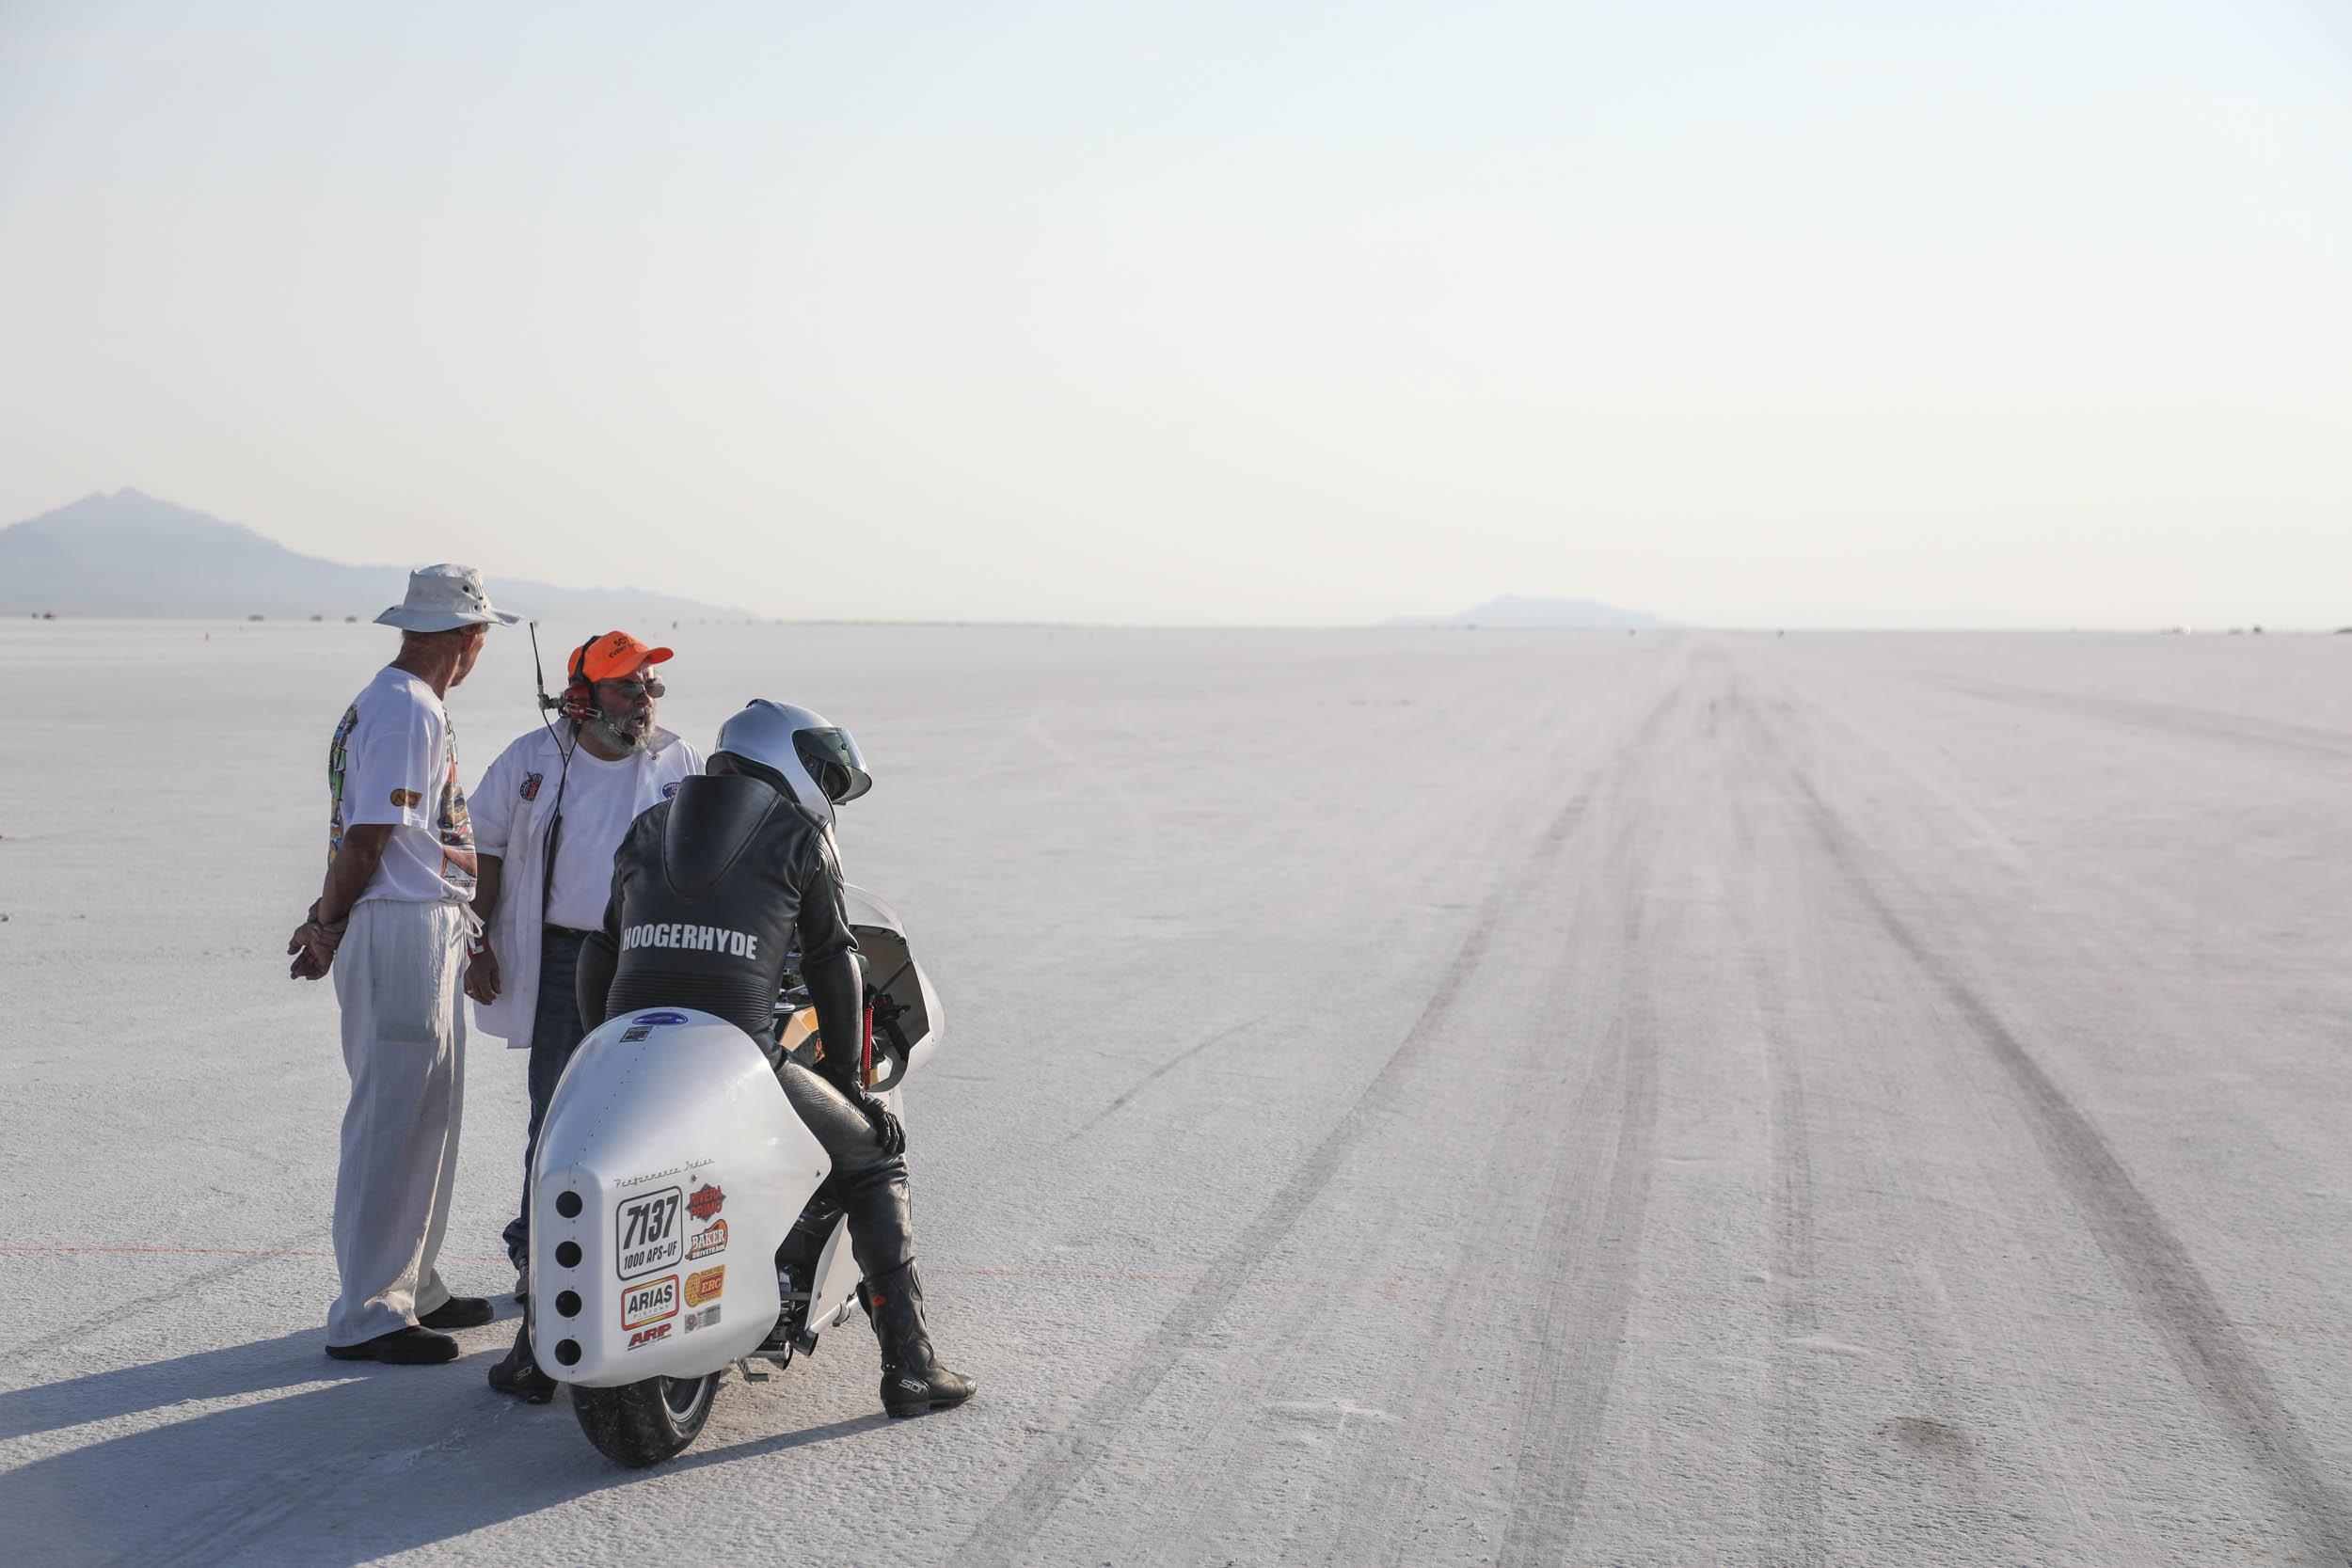 Motorcycle at Bonneville Salt Flats Speed Week